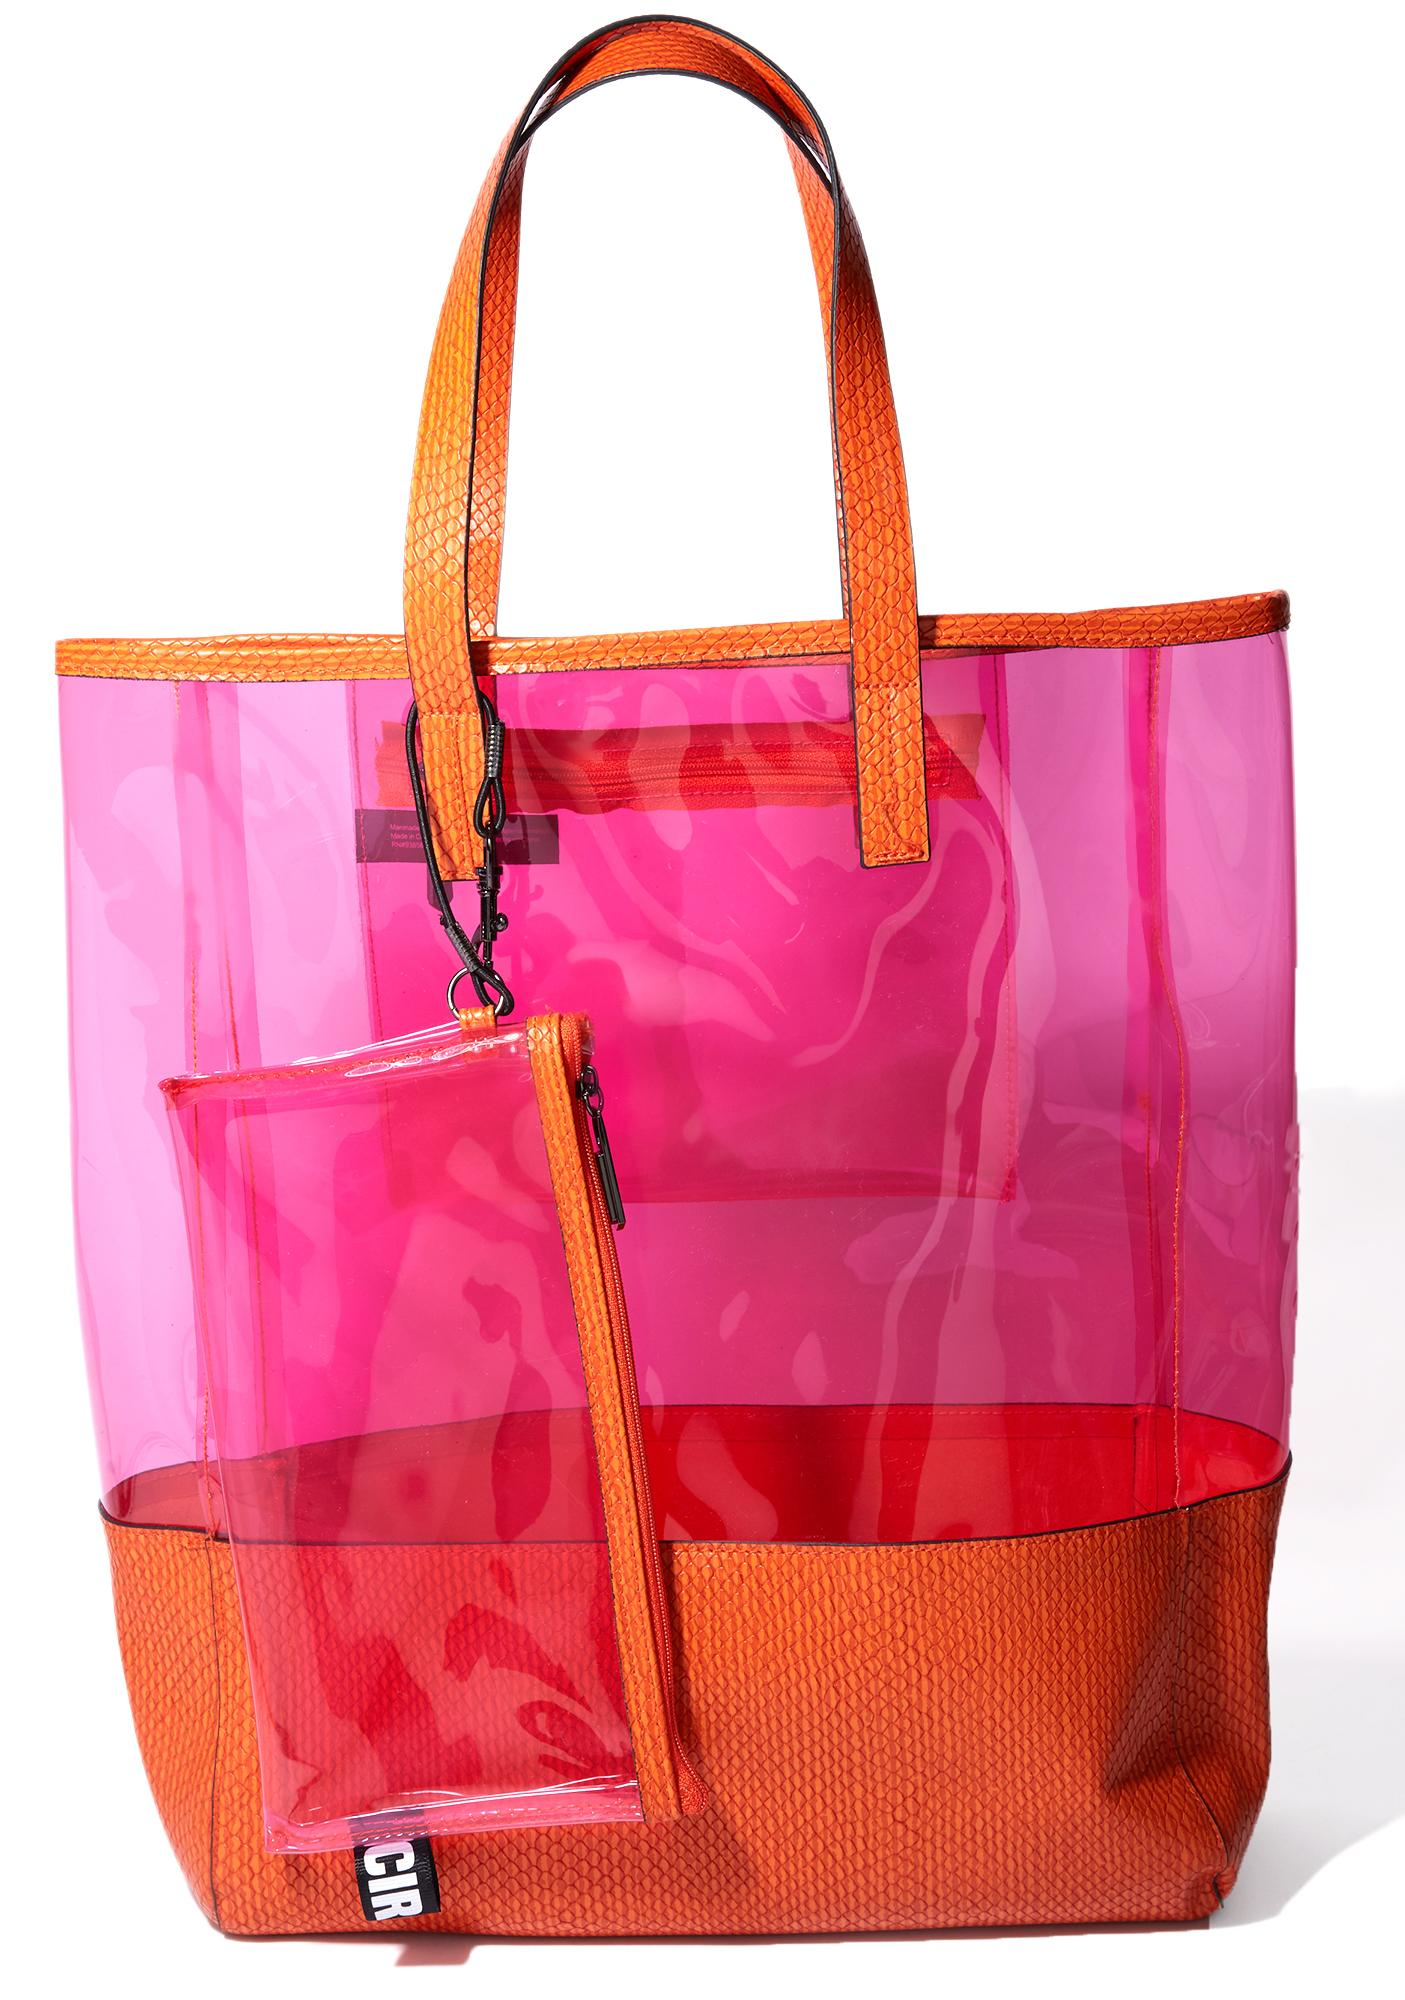 Circus by Sam Edelman Adley Pink Tote